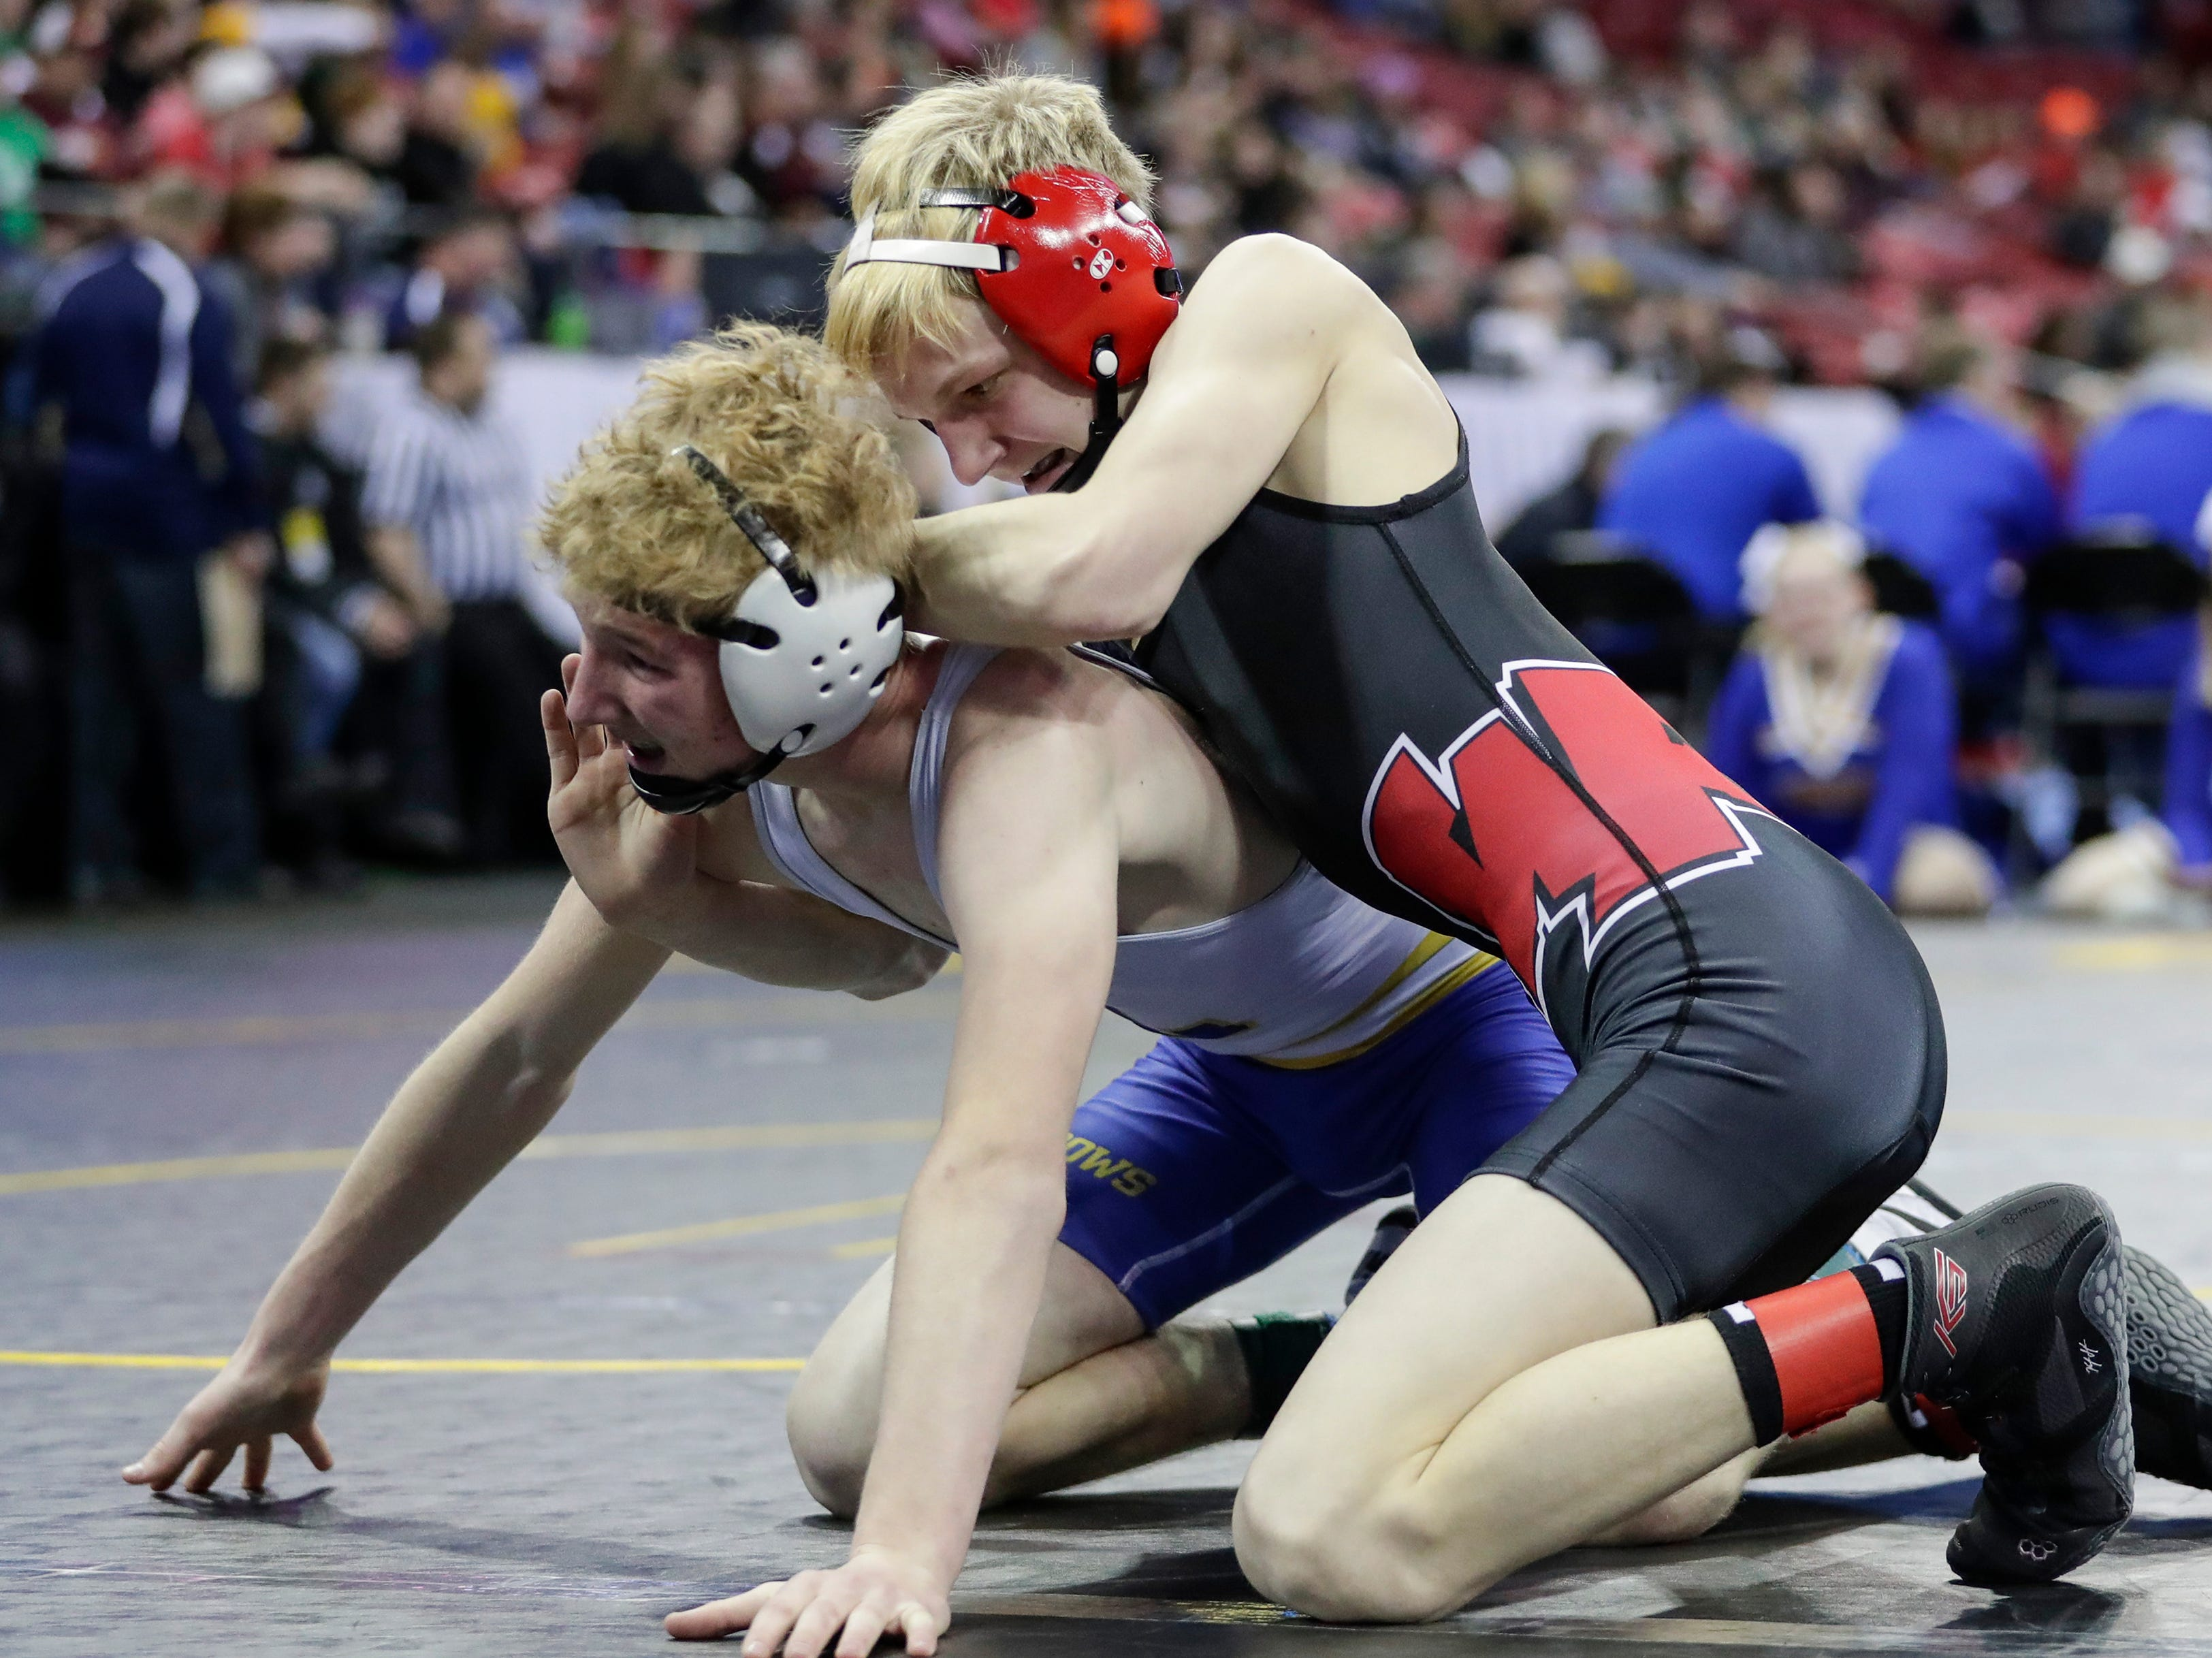 Weyauwega-Fremont's Carter Greening wrestles Lancaster's Carter Lull in a Division 3 113-pound weight class preliminary match during the WIAA state individual wrestling tournament at the Kohl Center Thursday, February 21, 2019, in Madison, Wis.